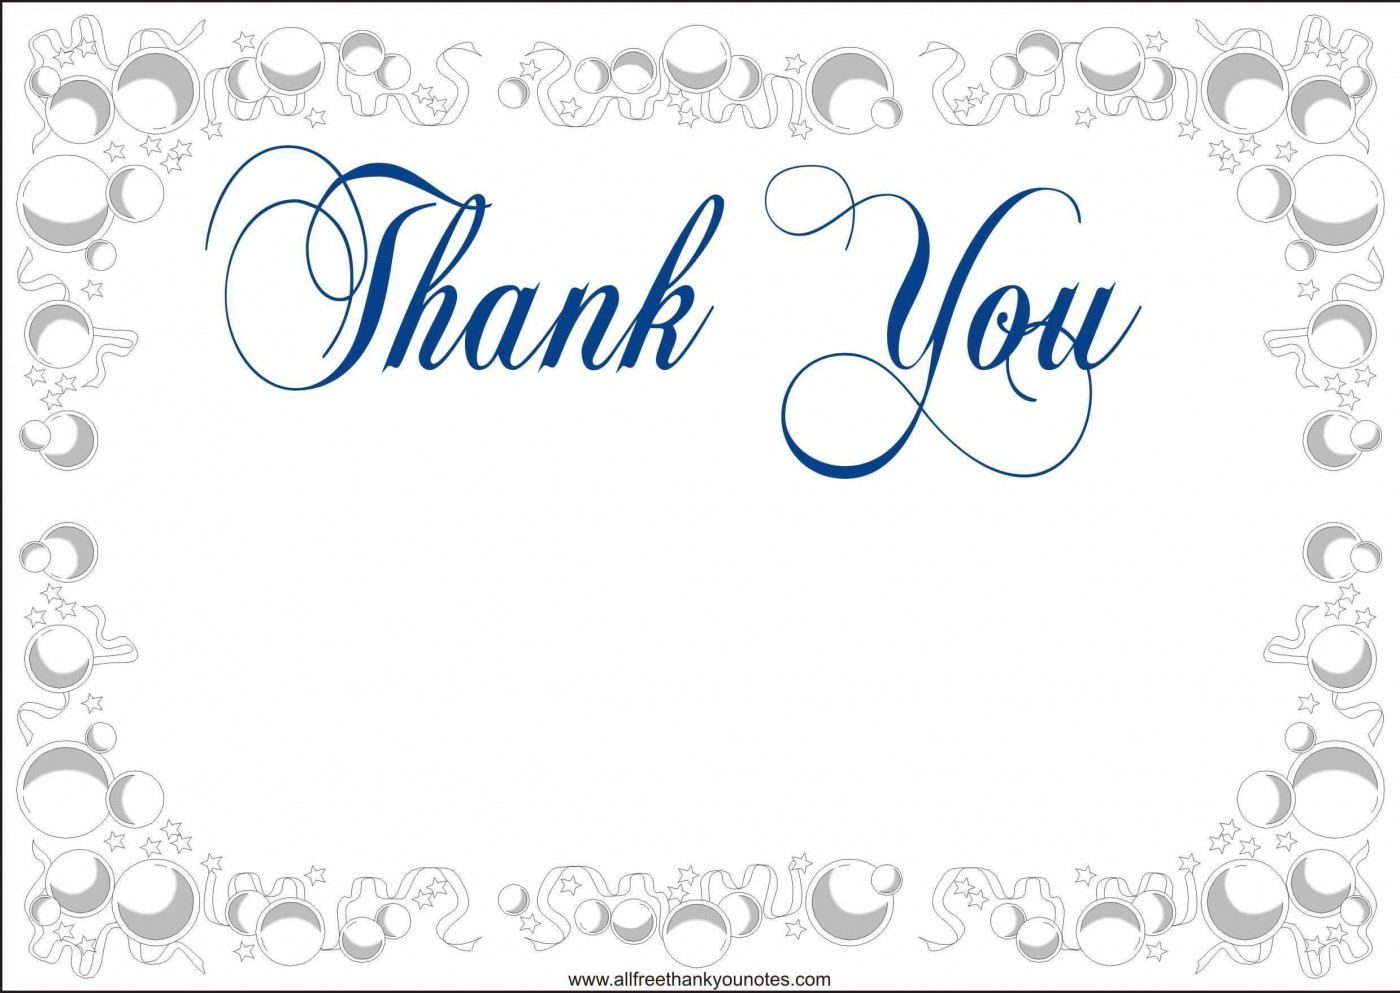 003 Awesome Thank You Card Template Sample  Wedding Busines Word Free1400